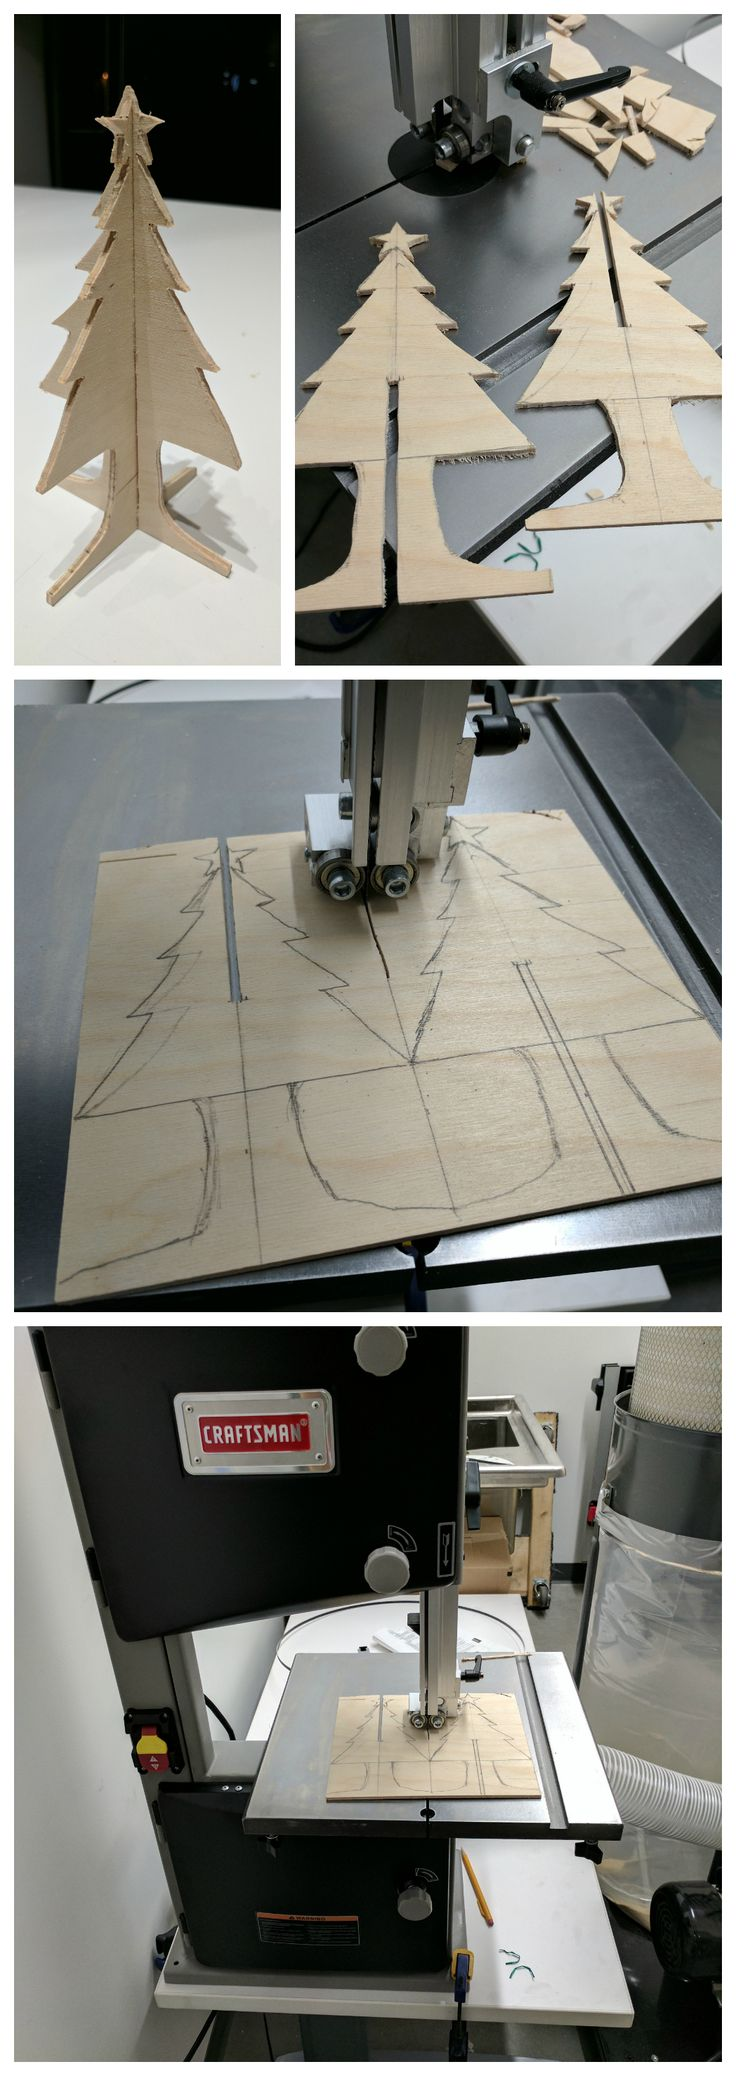 Interlocking desktop Christmas tree - easy practice project for the bandsaw. Draw & cut! Made by David